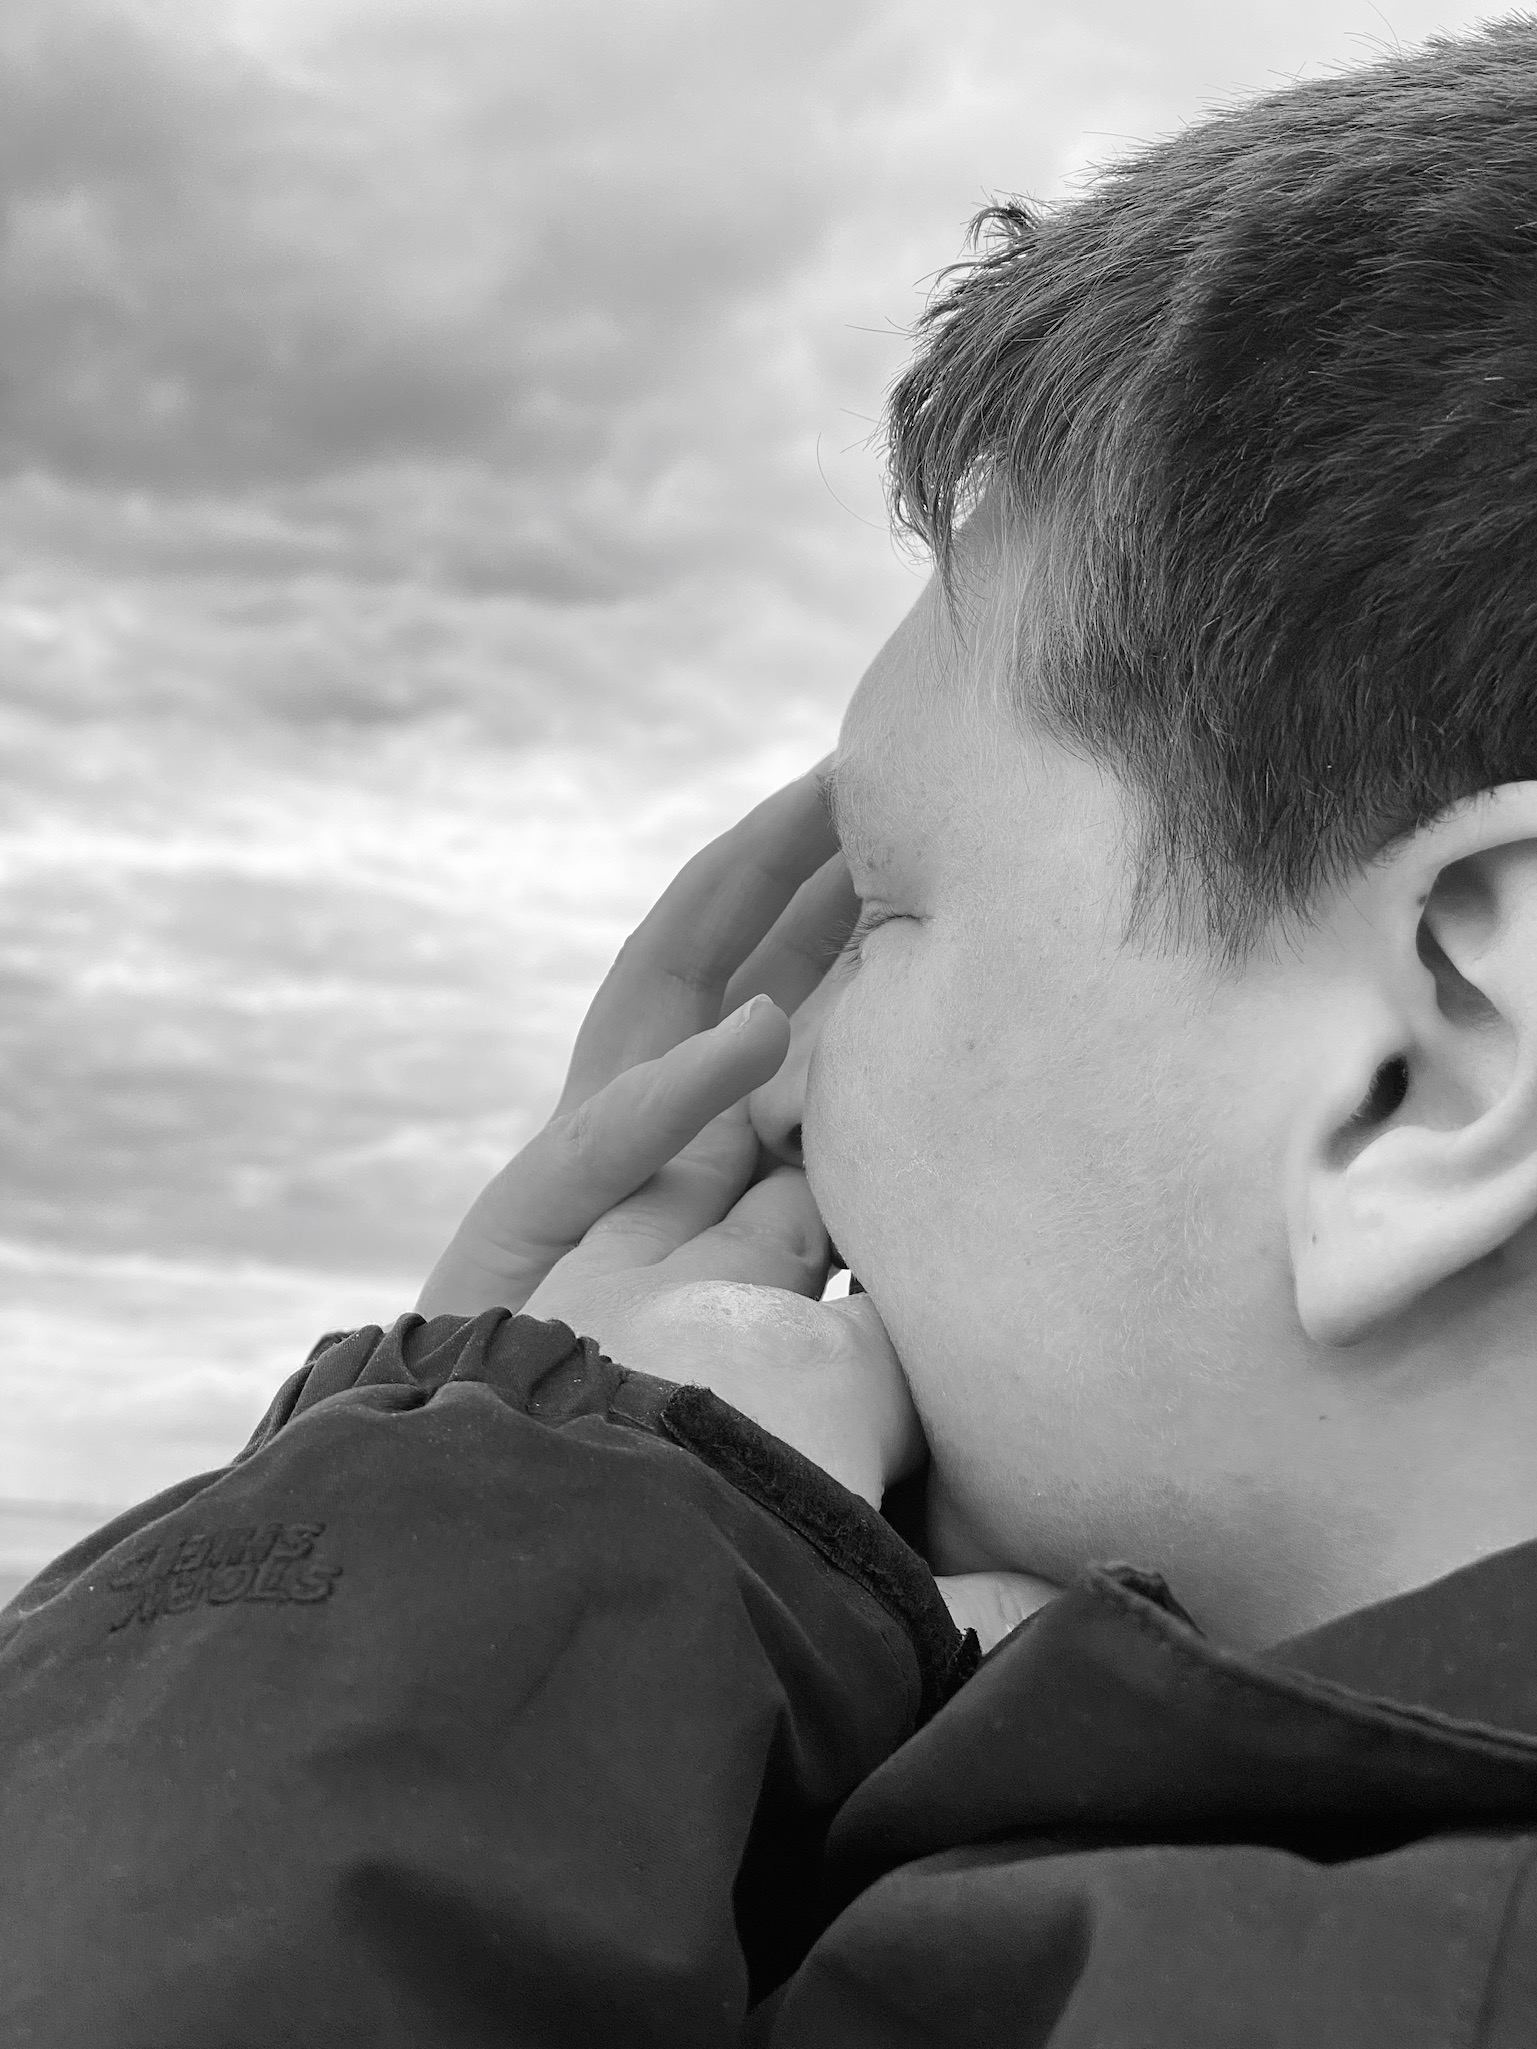 Profile image of 15 year old boy in black and white